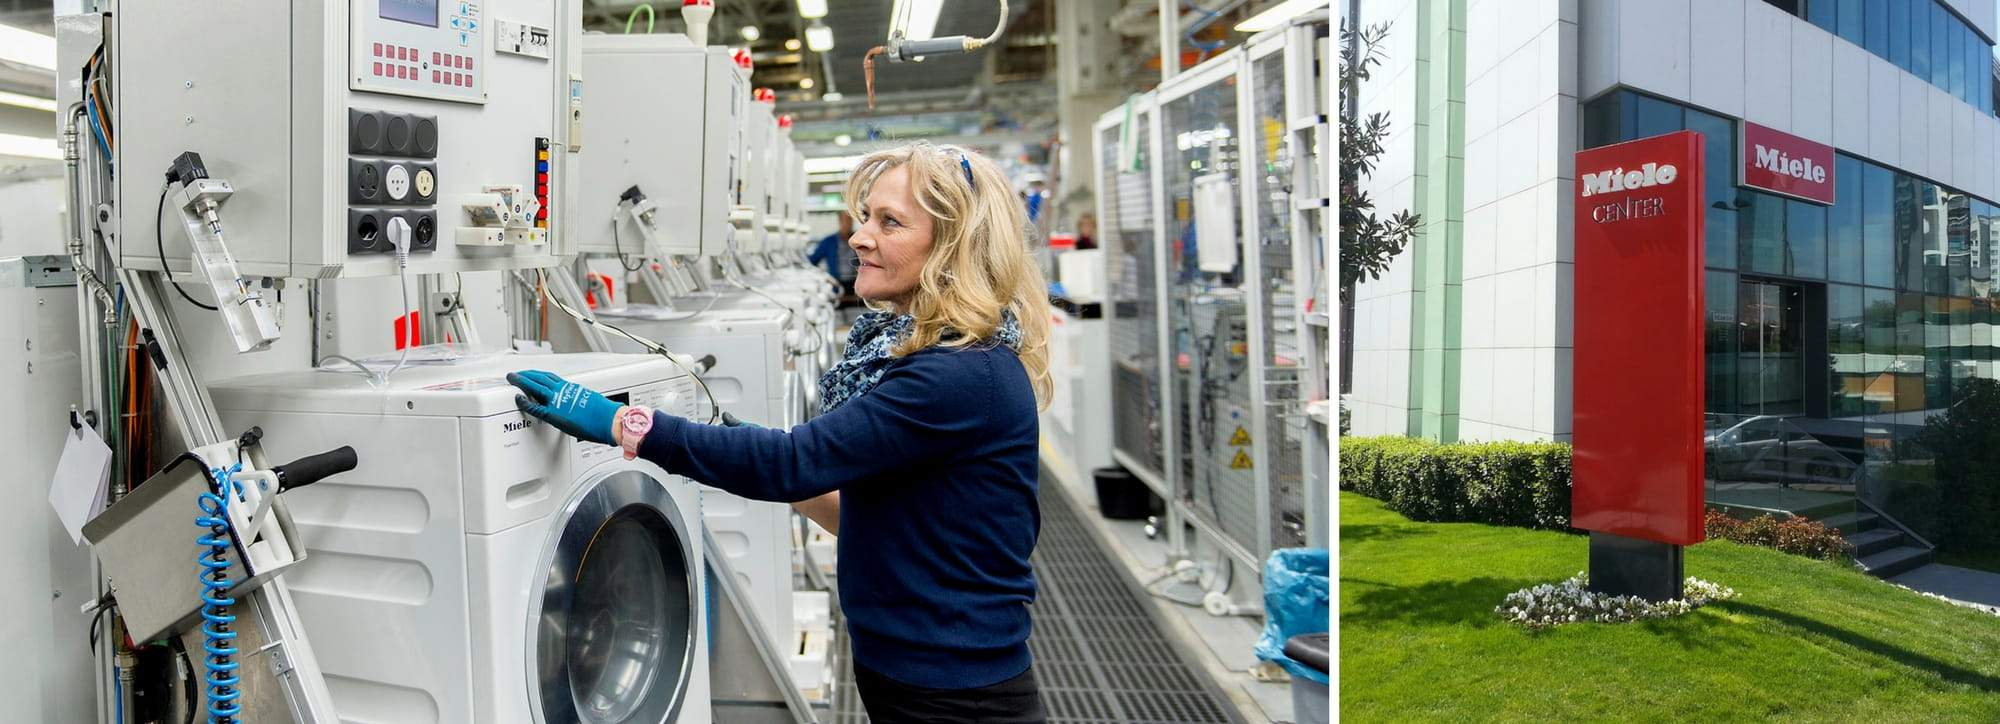 Spotlight on Miele: Washing Machines and Vacuums Made Better